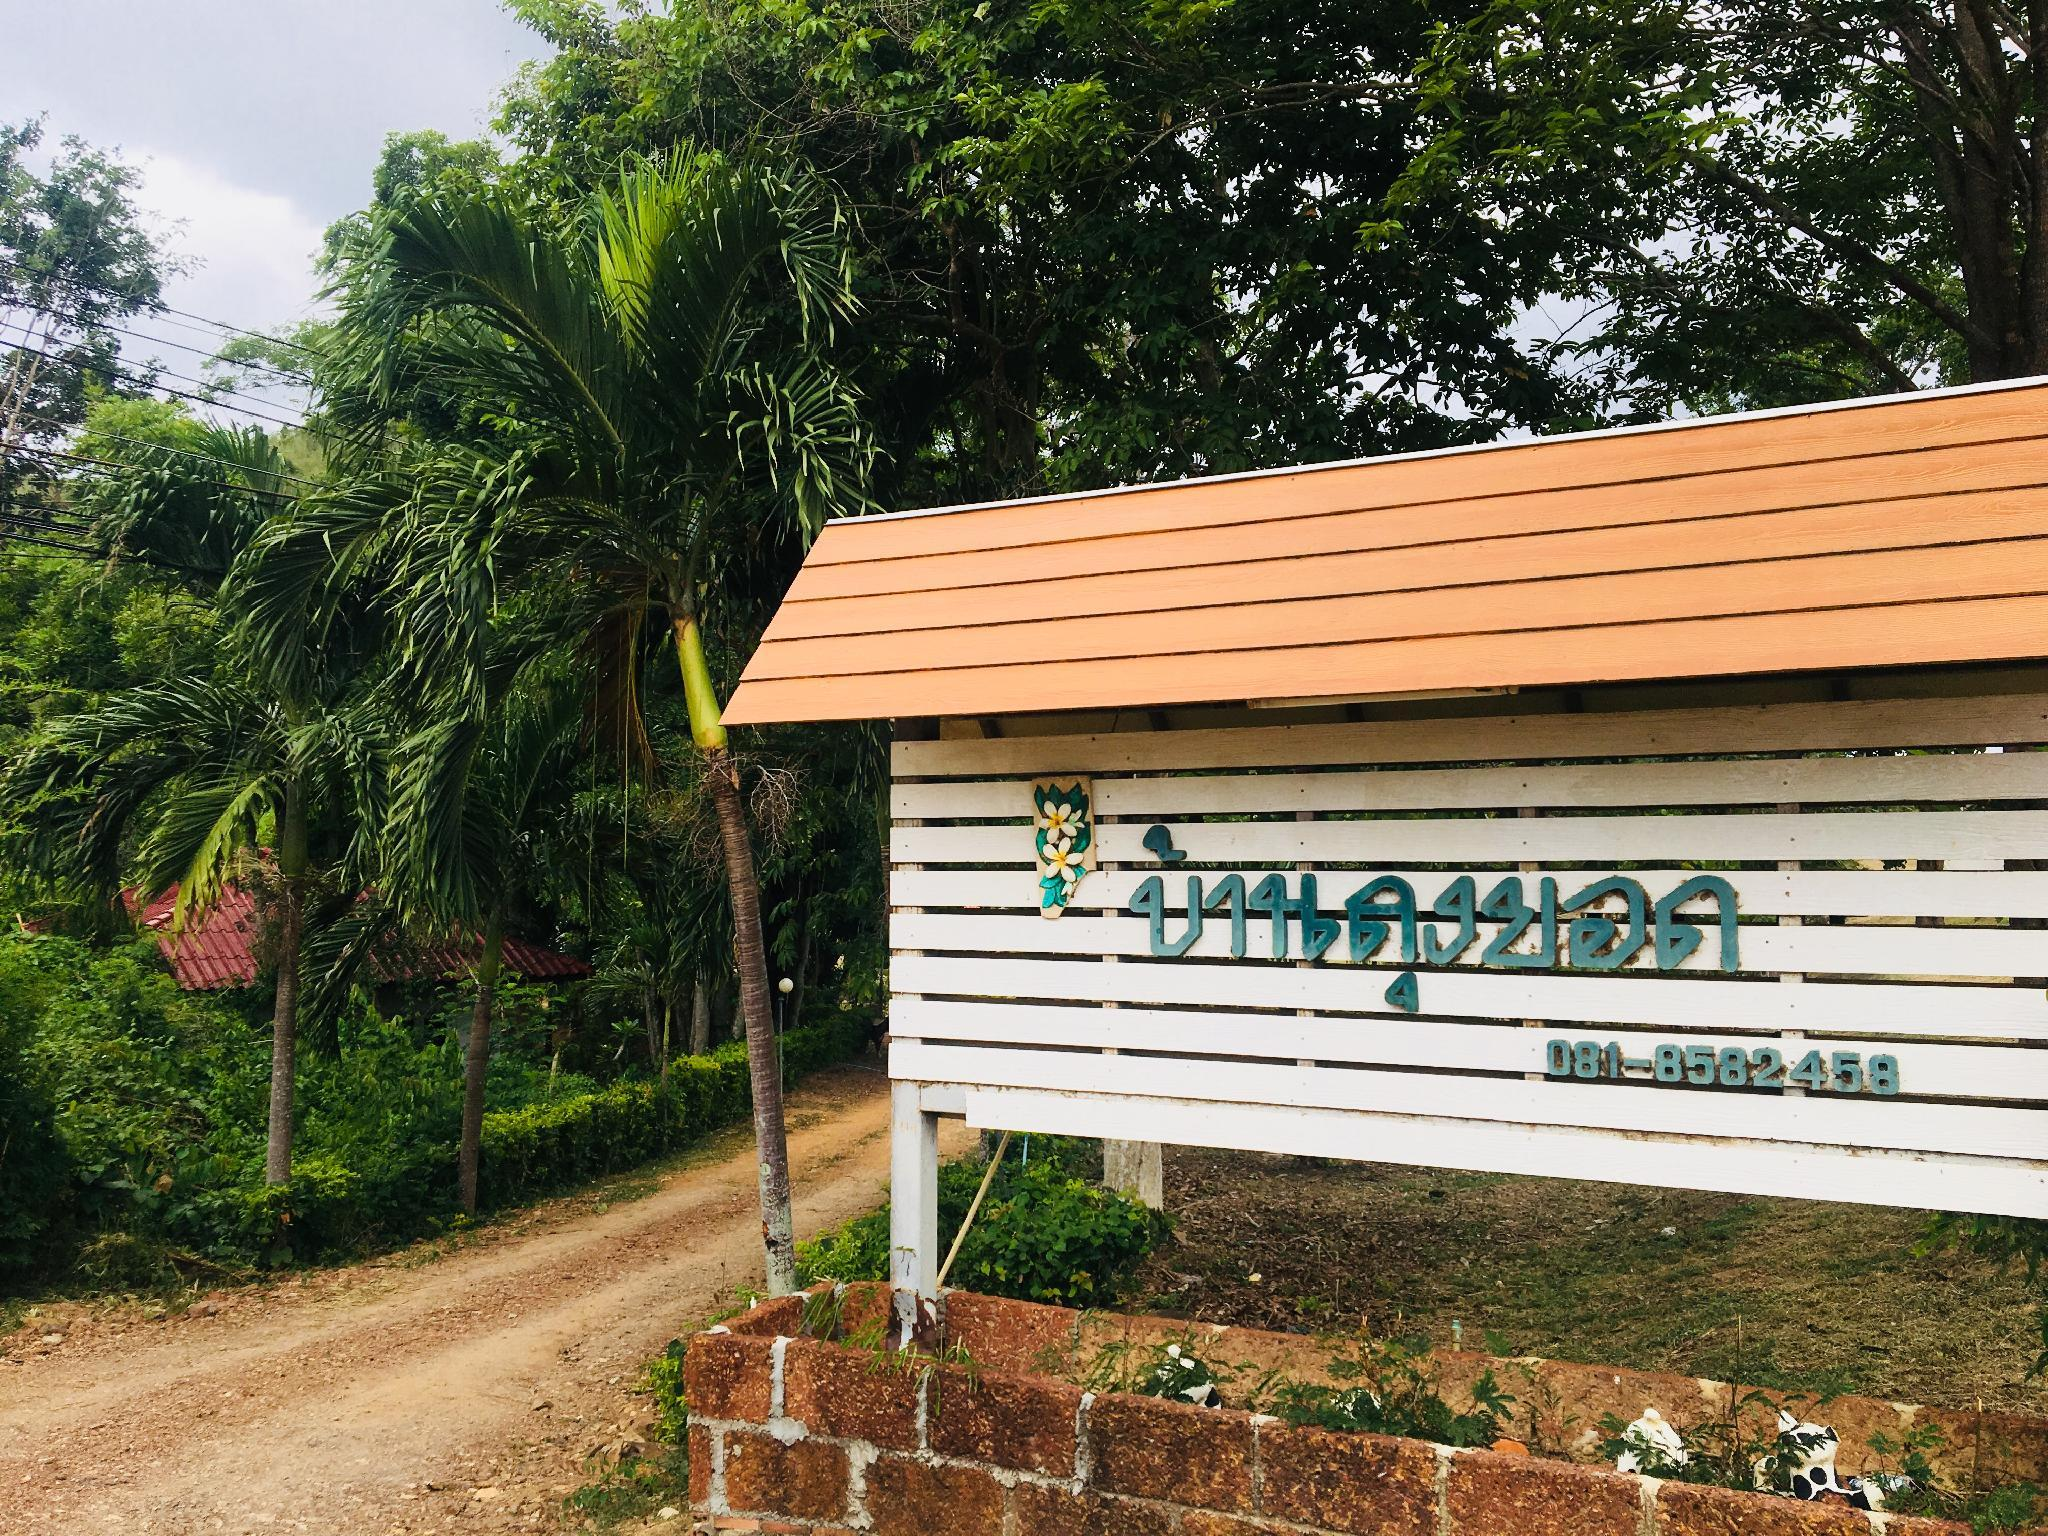 Ban Lung Yod Guest House